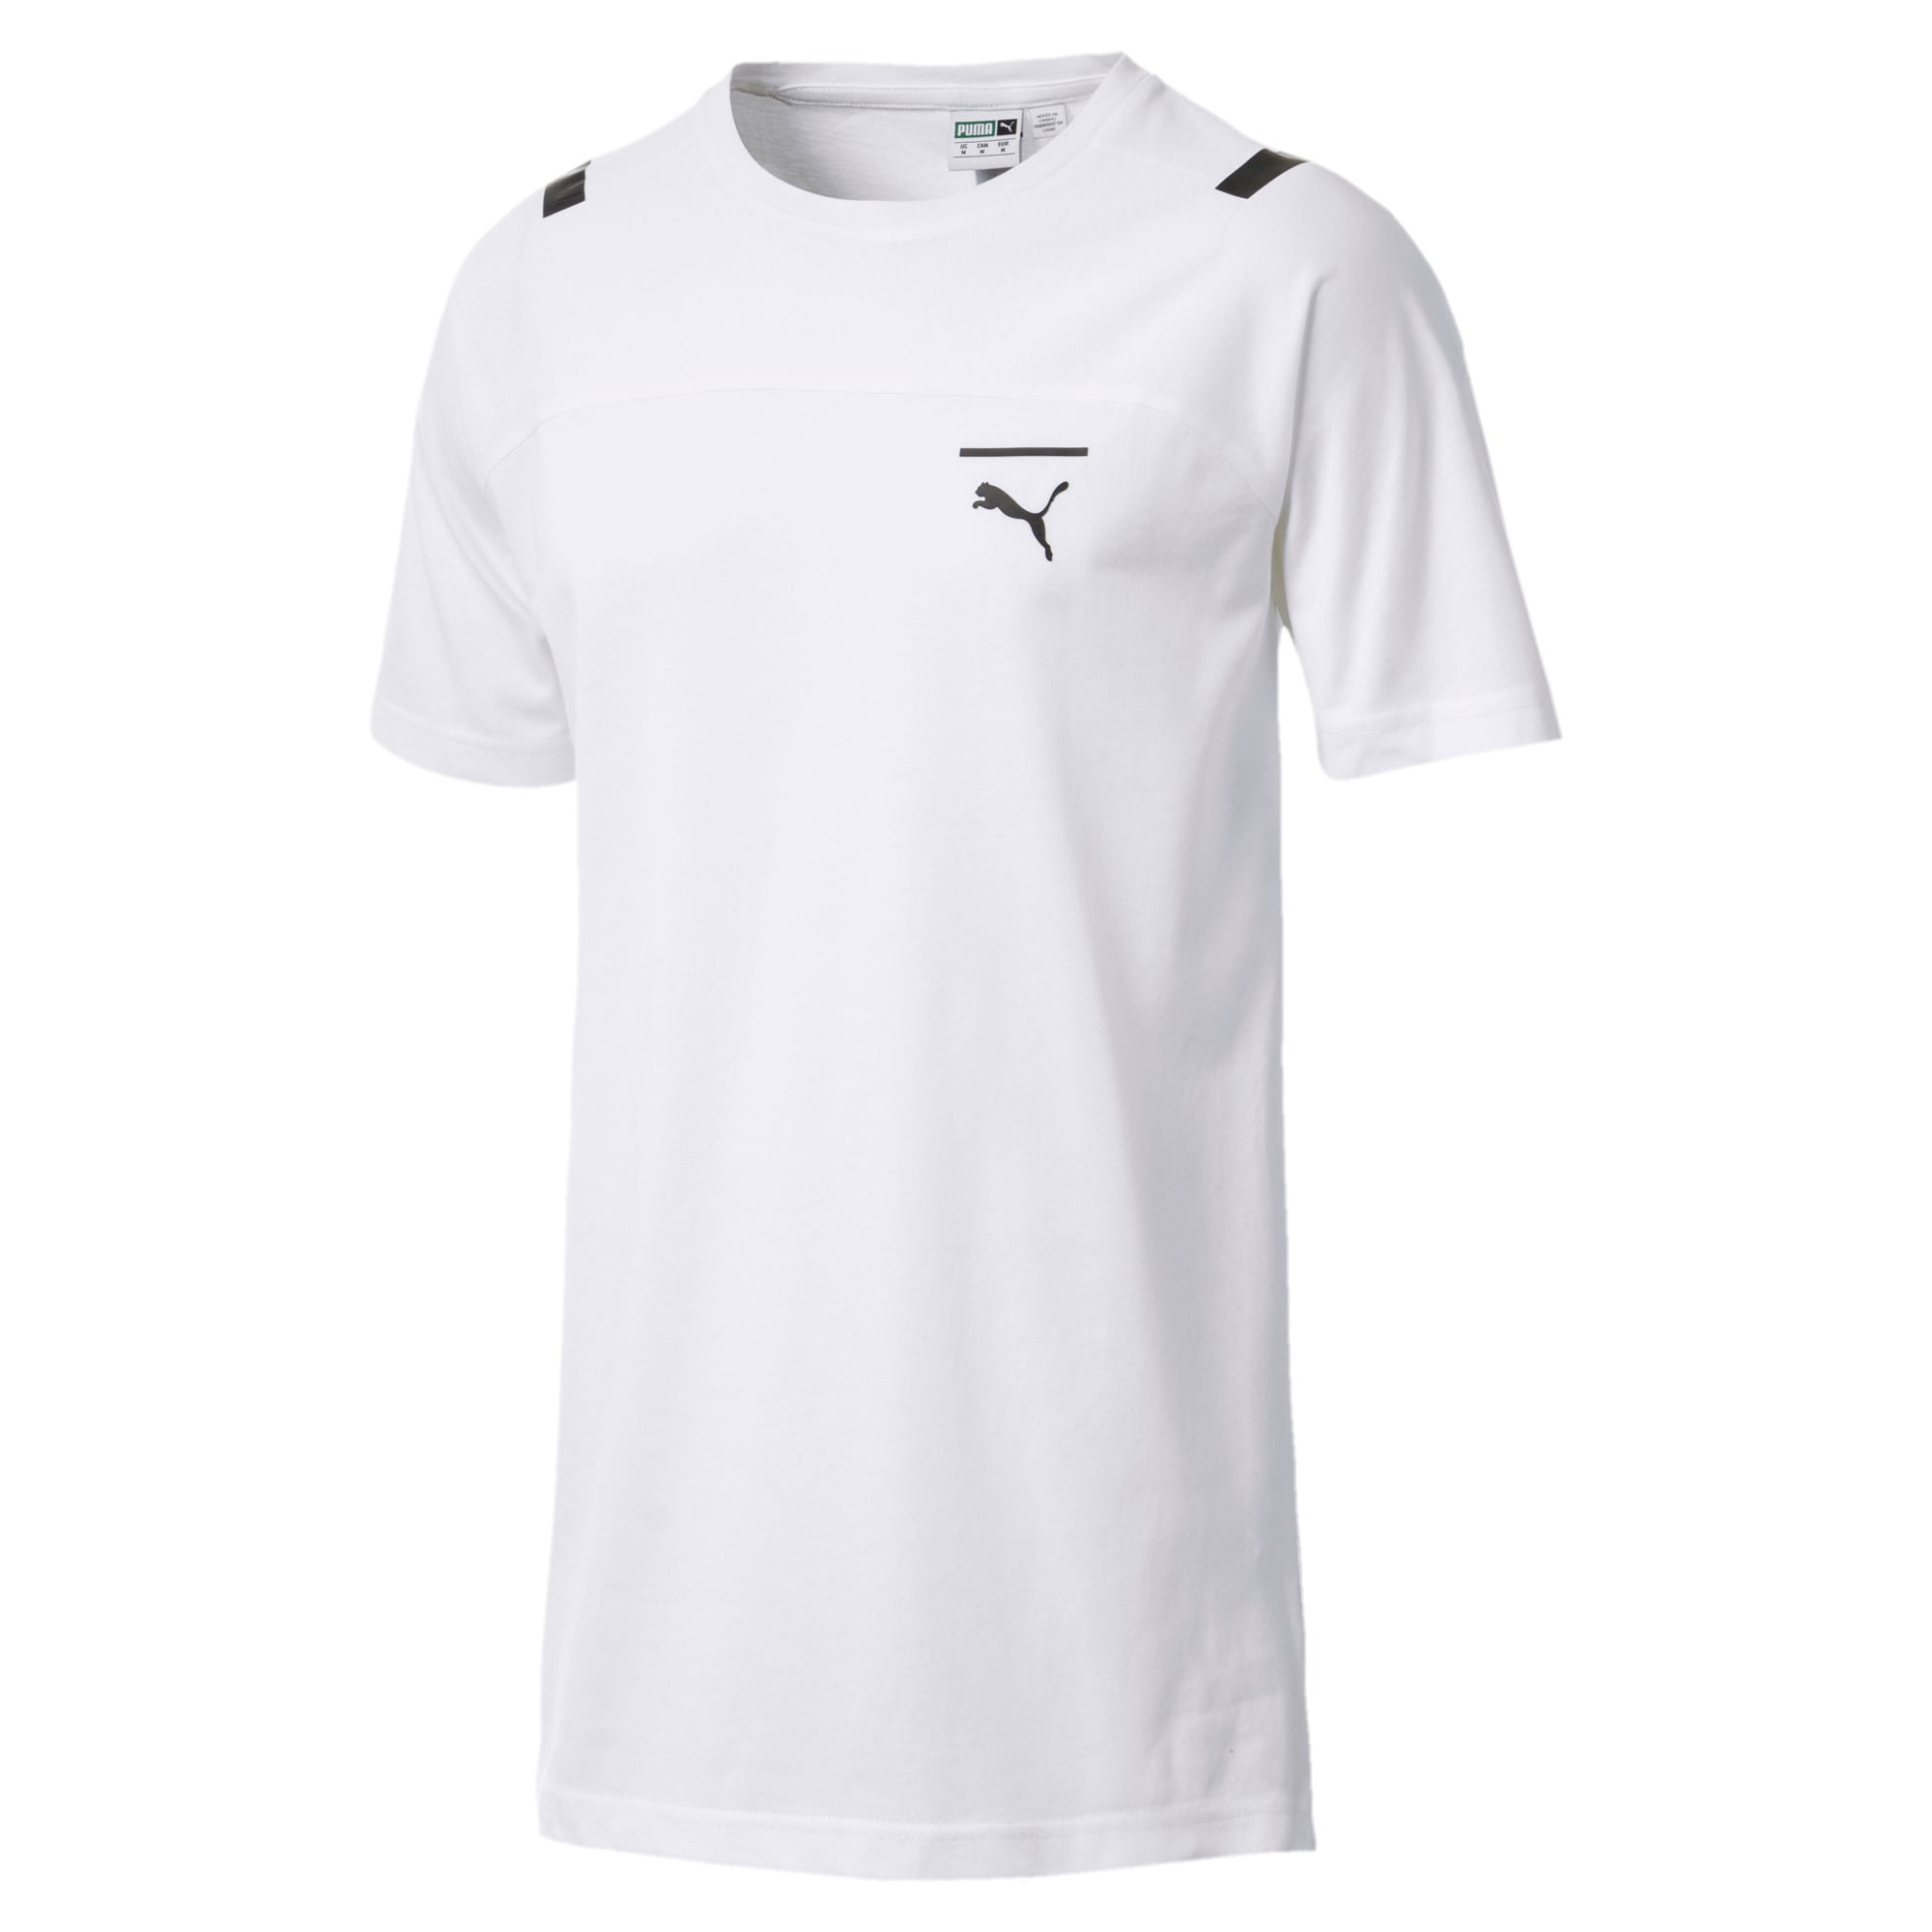 Thumbnail 1 of Pace Men's Tee, Puma White, medium-IND